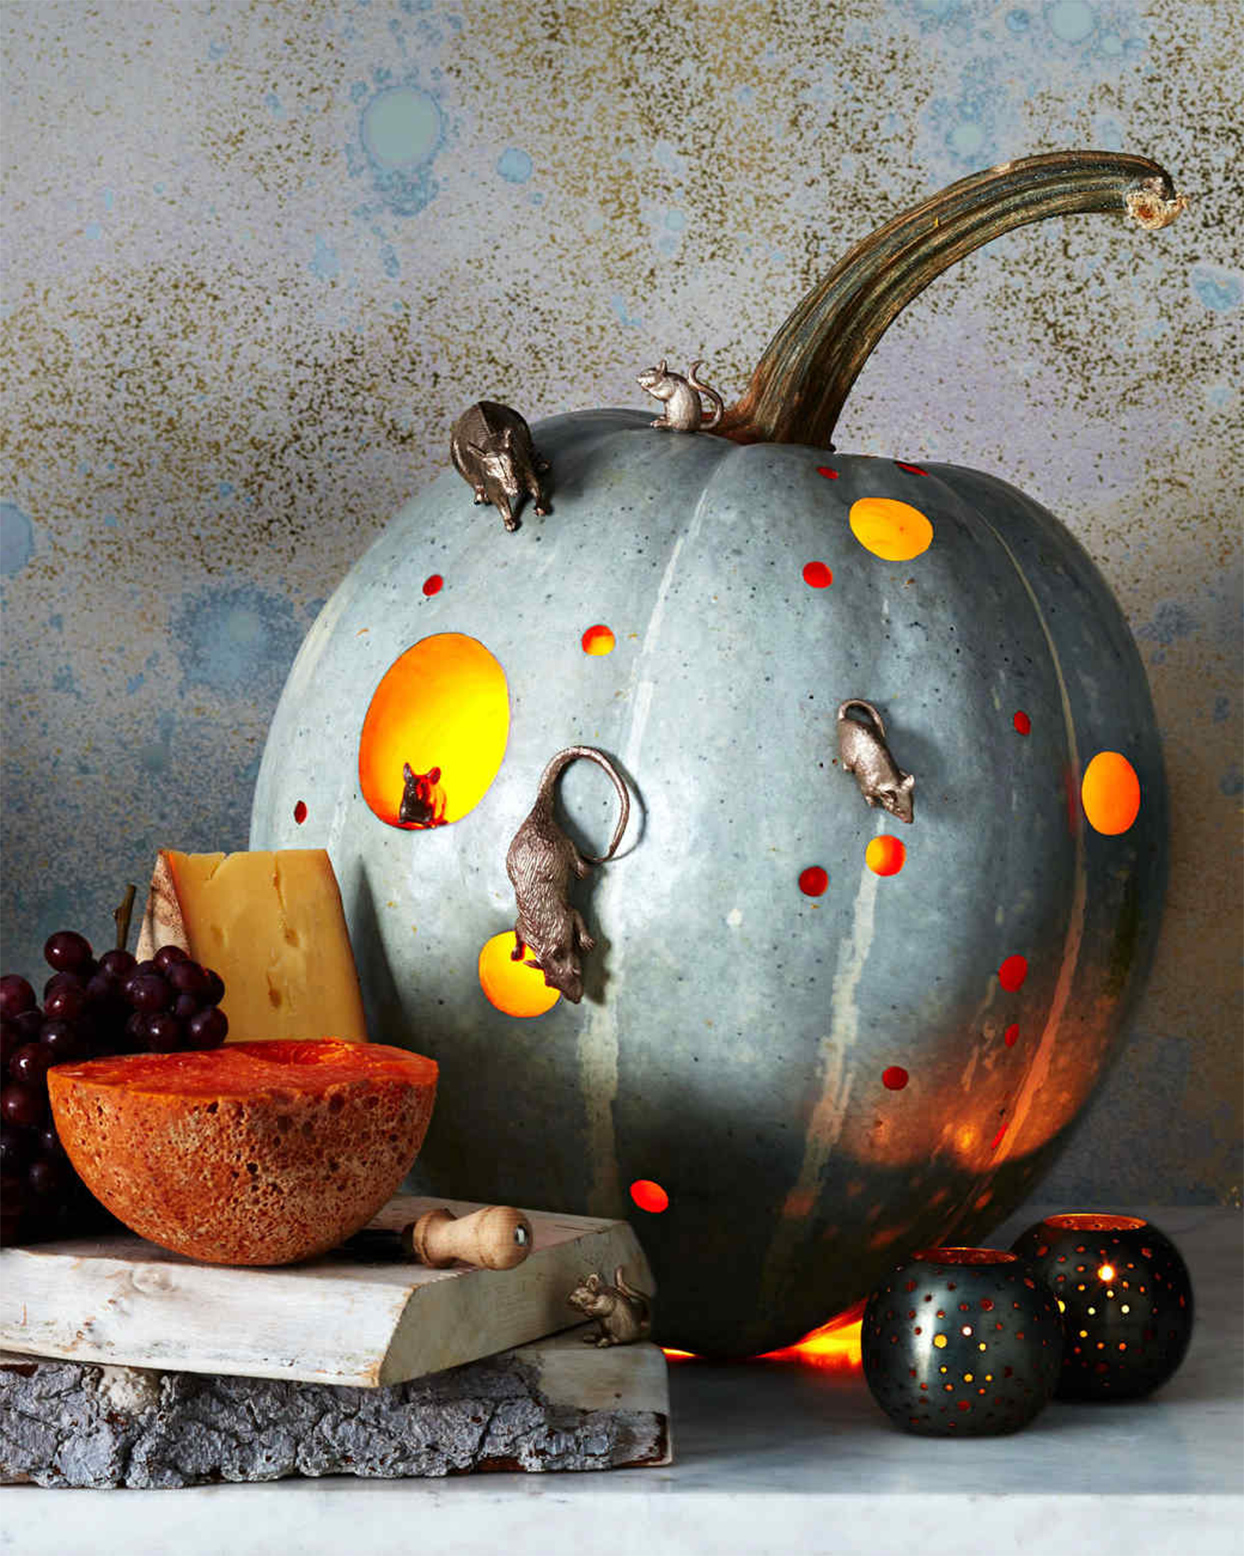 polka dot patterned pumpkin adorned with mice